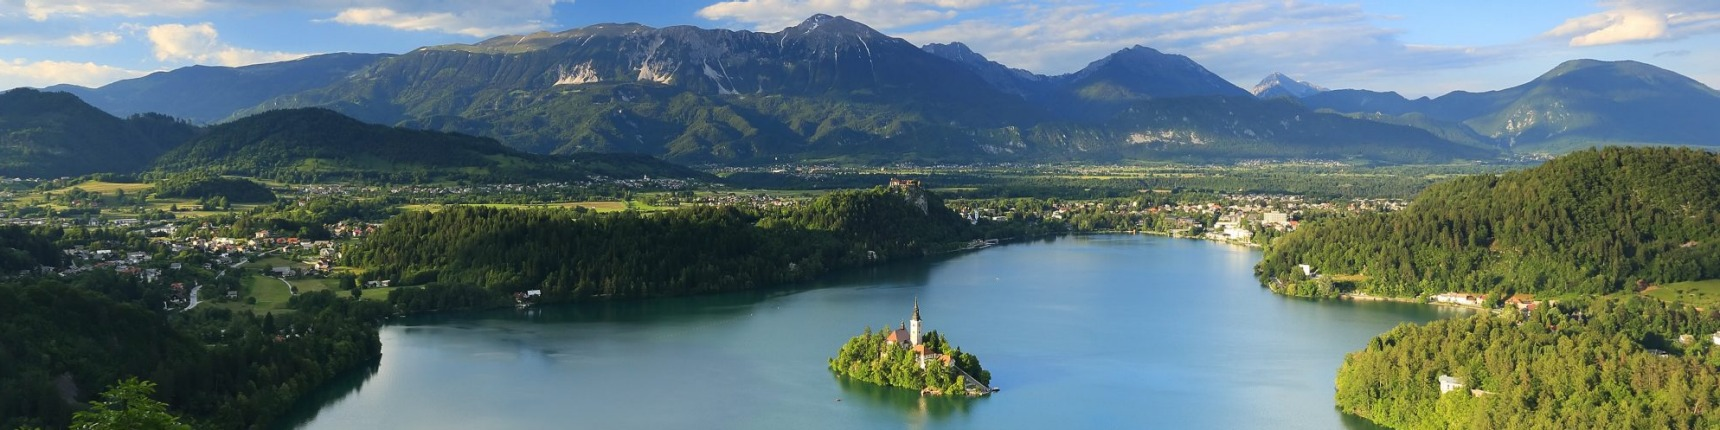 Bled Lake in Slovenia with the Assumption of Mary Church, Slovenia, Europe